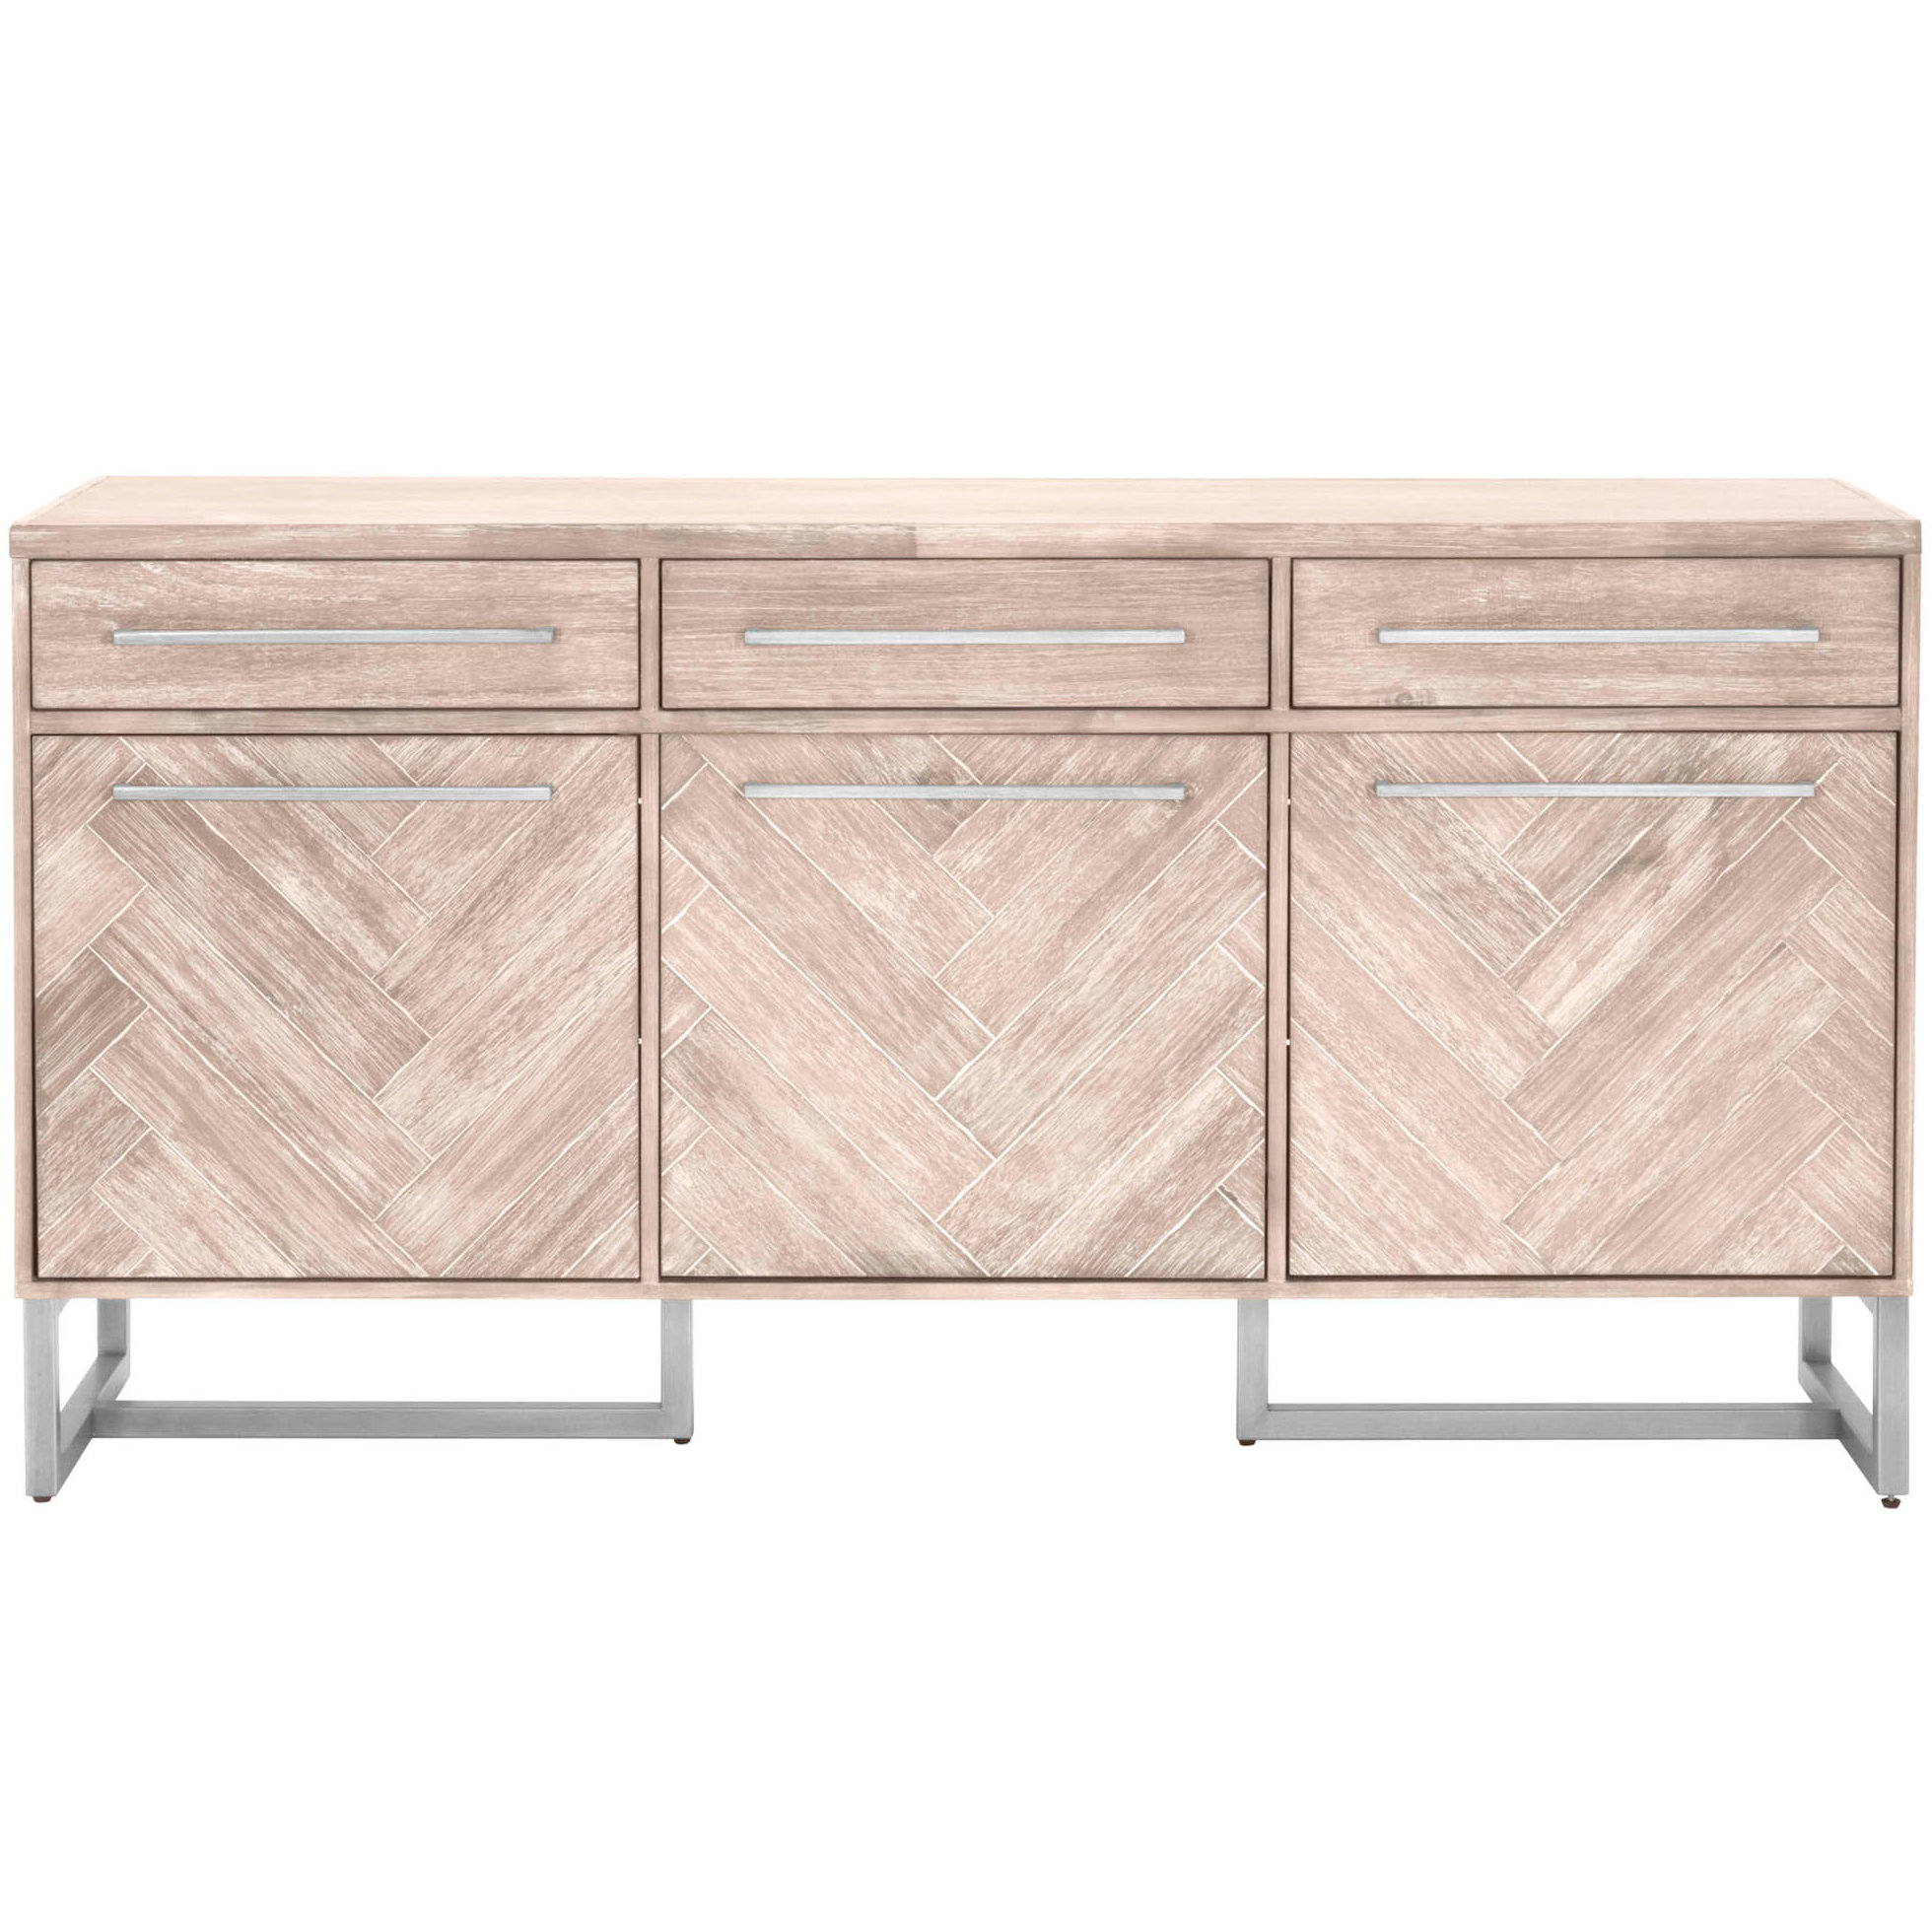 Rosson Sideboards Intended For Widely Used Tre Sideboard (View 11 of 20)